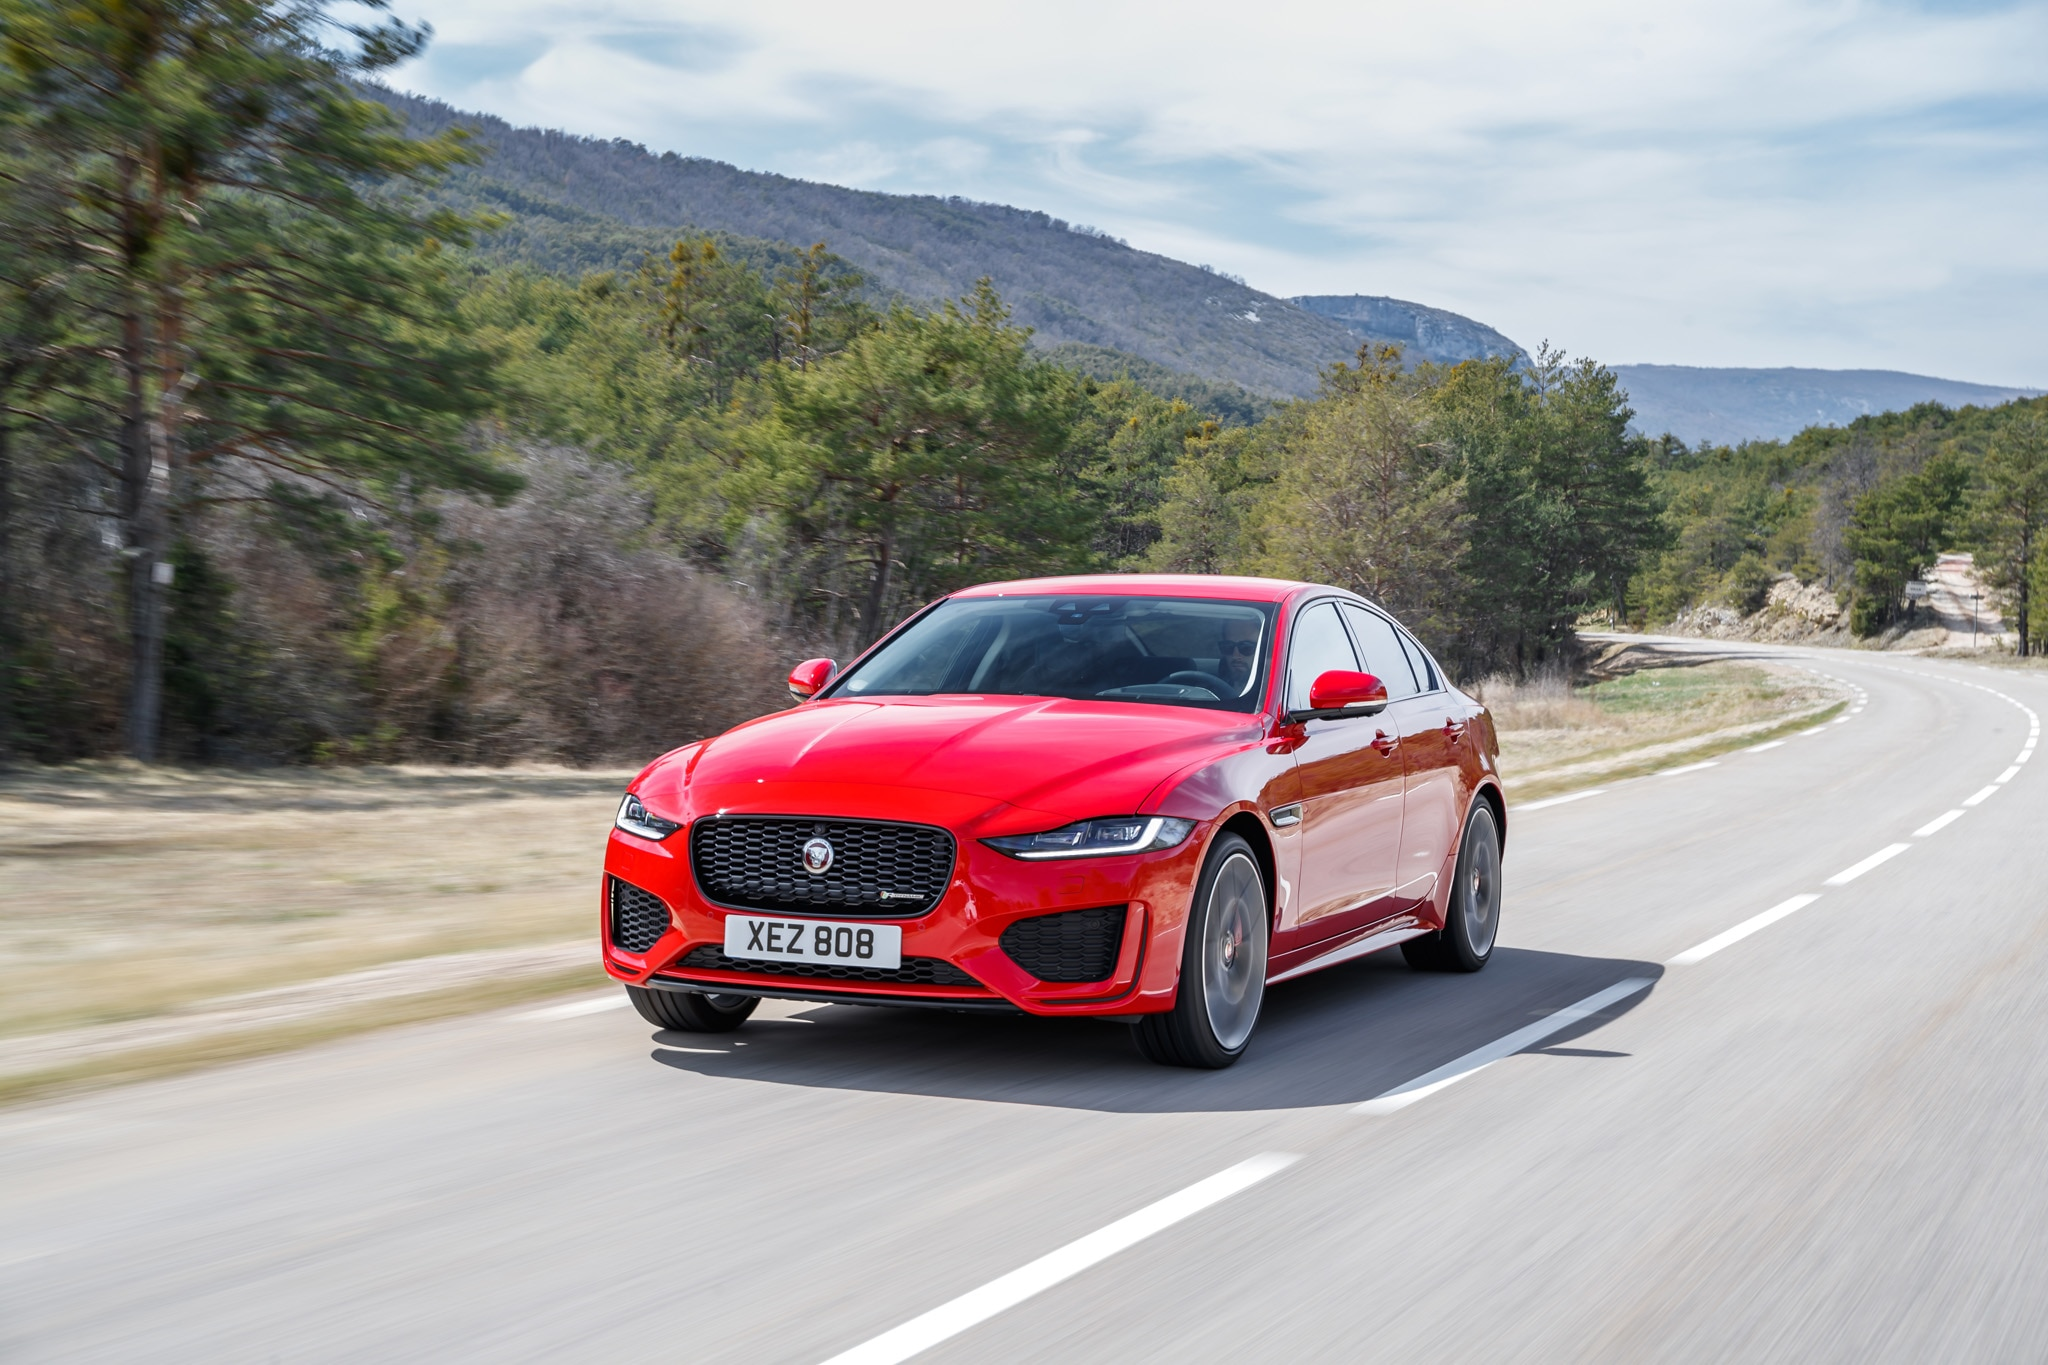 2020 Jaguar XE First Drive: Down Two Cylinders, Up One Interior | Automobile Magazine